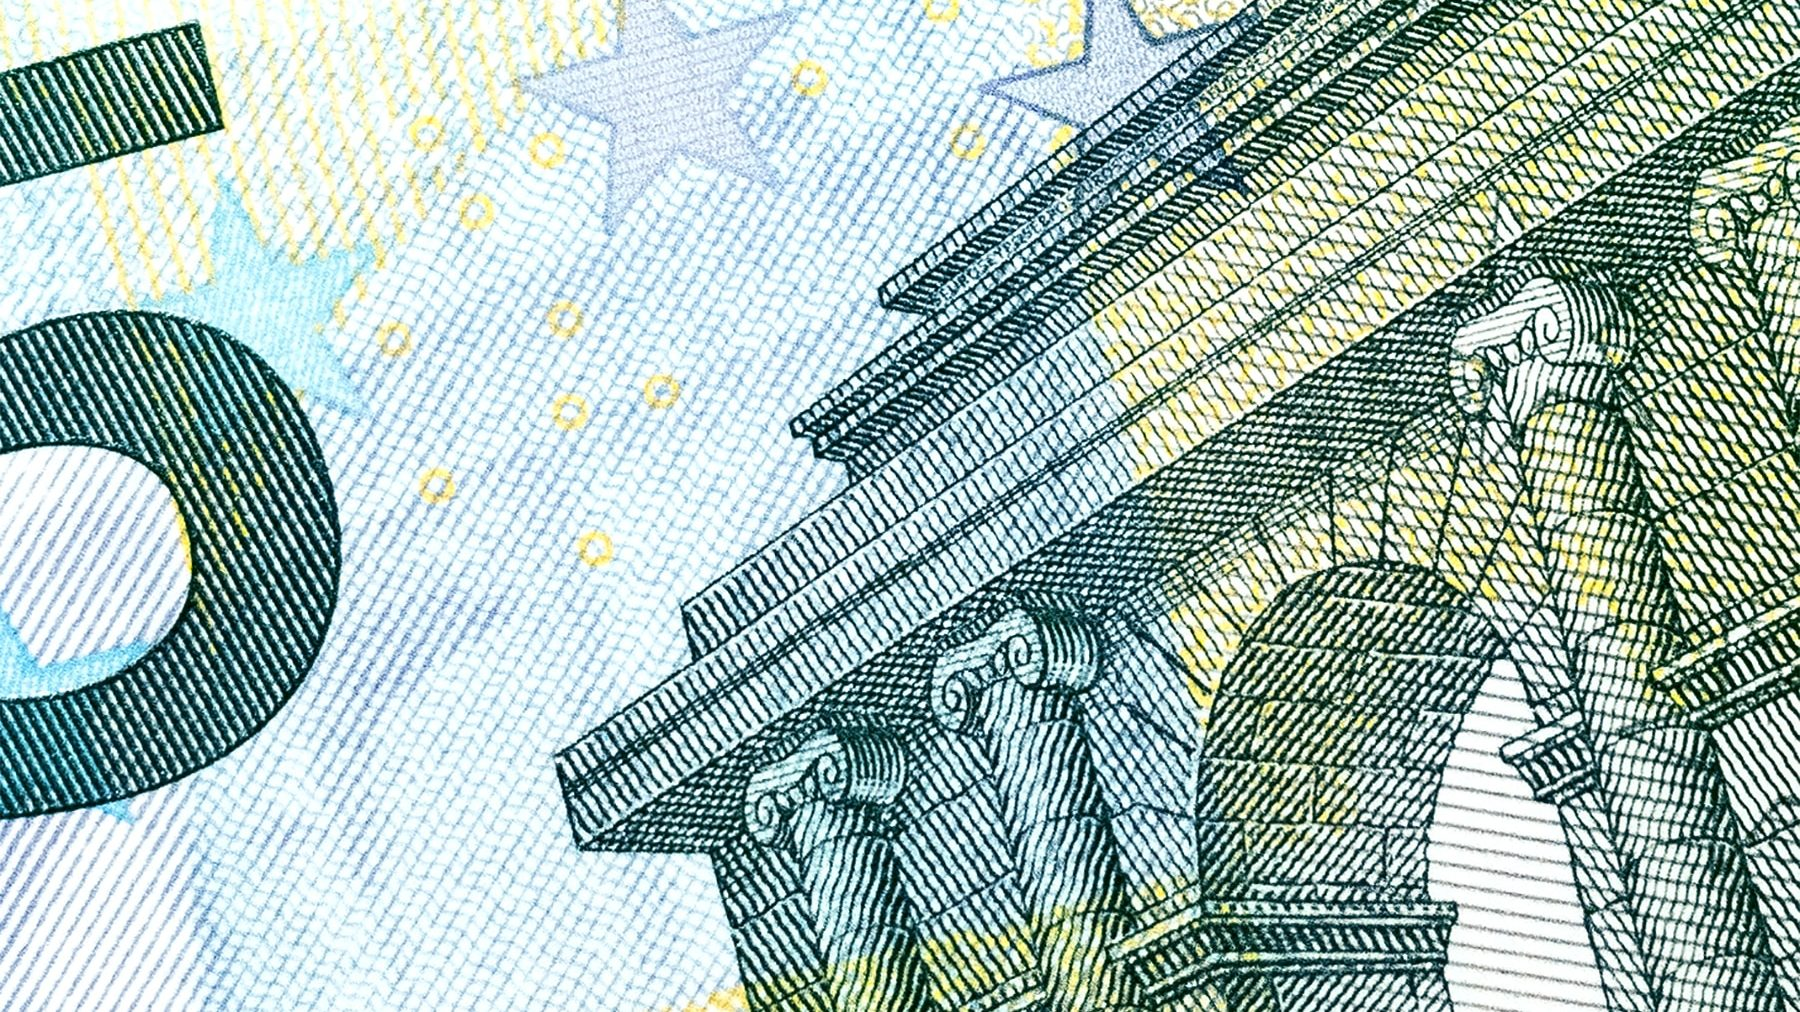 A close-up of paper currency.